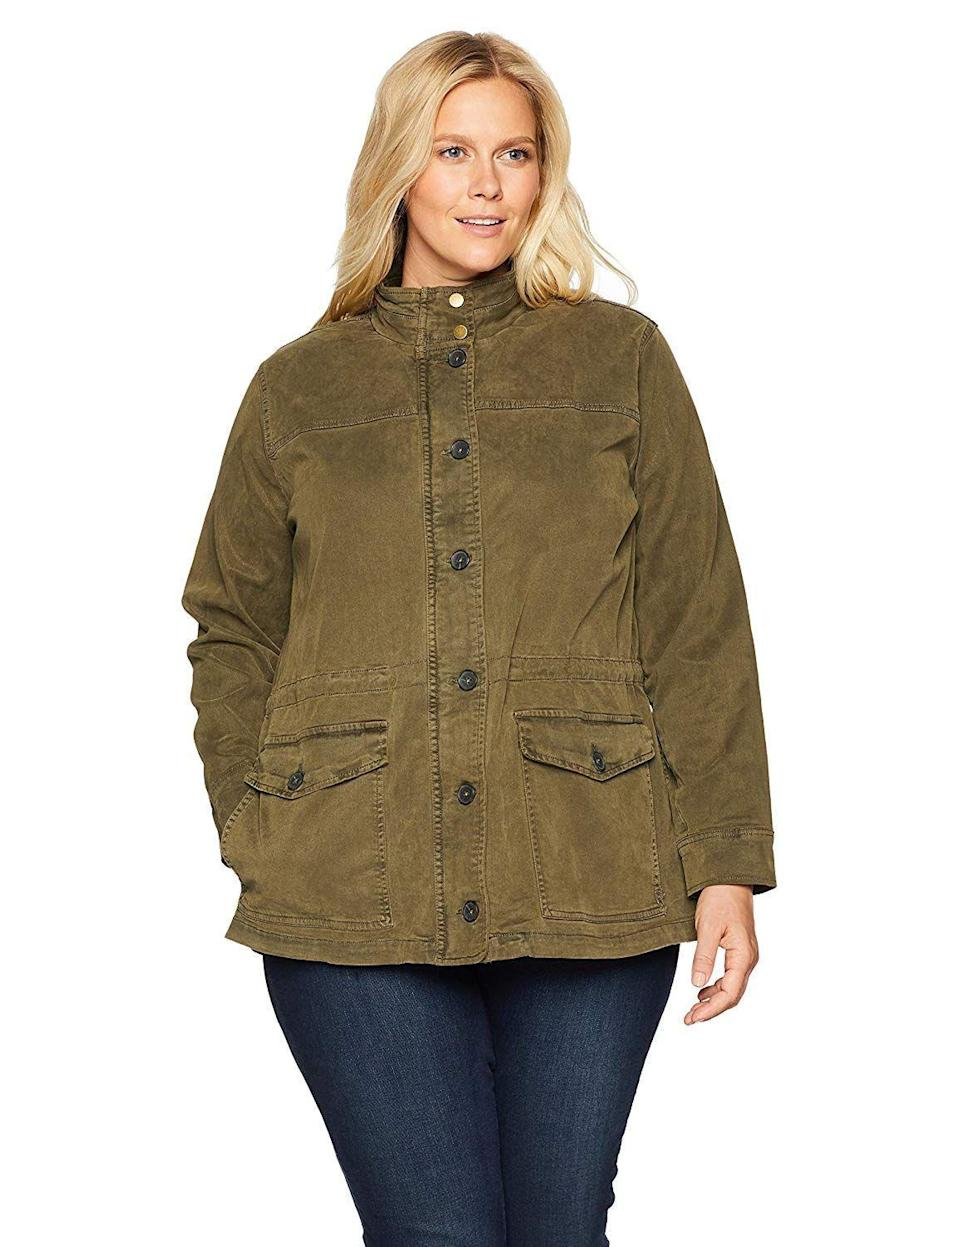 """<p><strong>Lucky Brand</strong></p><p>amazon.com</p><p><strong>$96.87</strong></p><p><a href=""""http://www.amazon.com/dp/B07D1KRYQ5/?tag=syn-yahoo-20&ascsubtag=%5Bartid%7C10049.g.28749279%5Bsrc%7Cyahoo-us"""" rel=""""nofollow noopener"""" target=""""_blank"""" data-ylk=""""slk:Shop Now"""" class=""""link rapid-noclick-resp"""">Shop Now</a></p><p>These typically have a boxy silhouette, no shortage of pockets, and are typically made of denim or waxed canvas—i.e., durable fabrics for roughing it. If you're hiking or camping outdoors, you def wanna add one of these to your cart. </p>"""